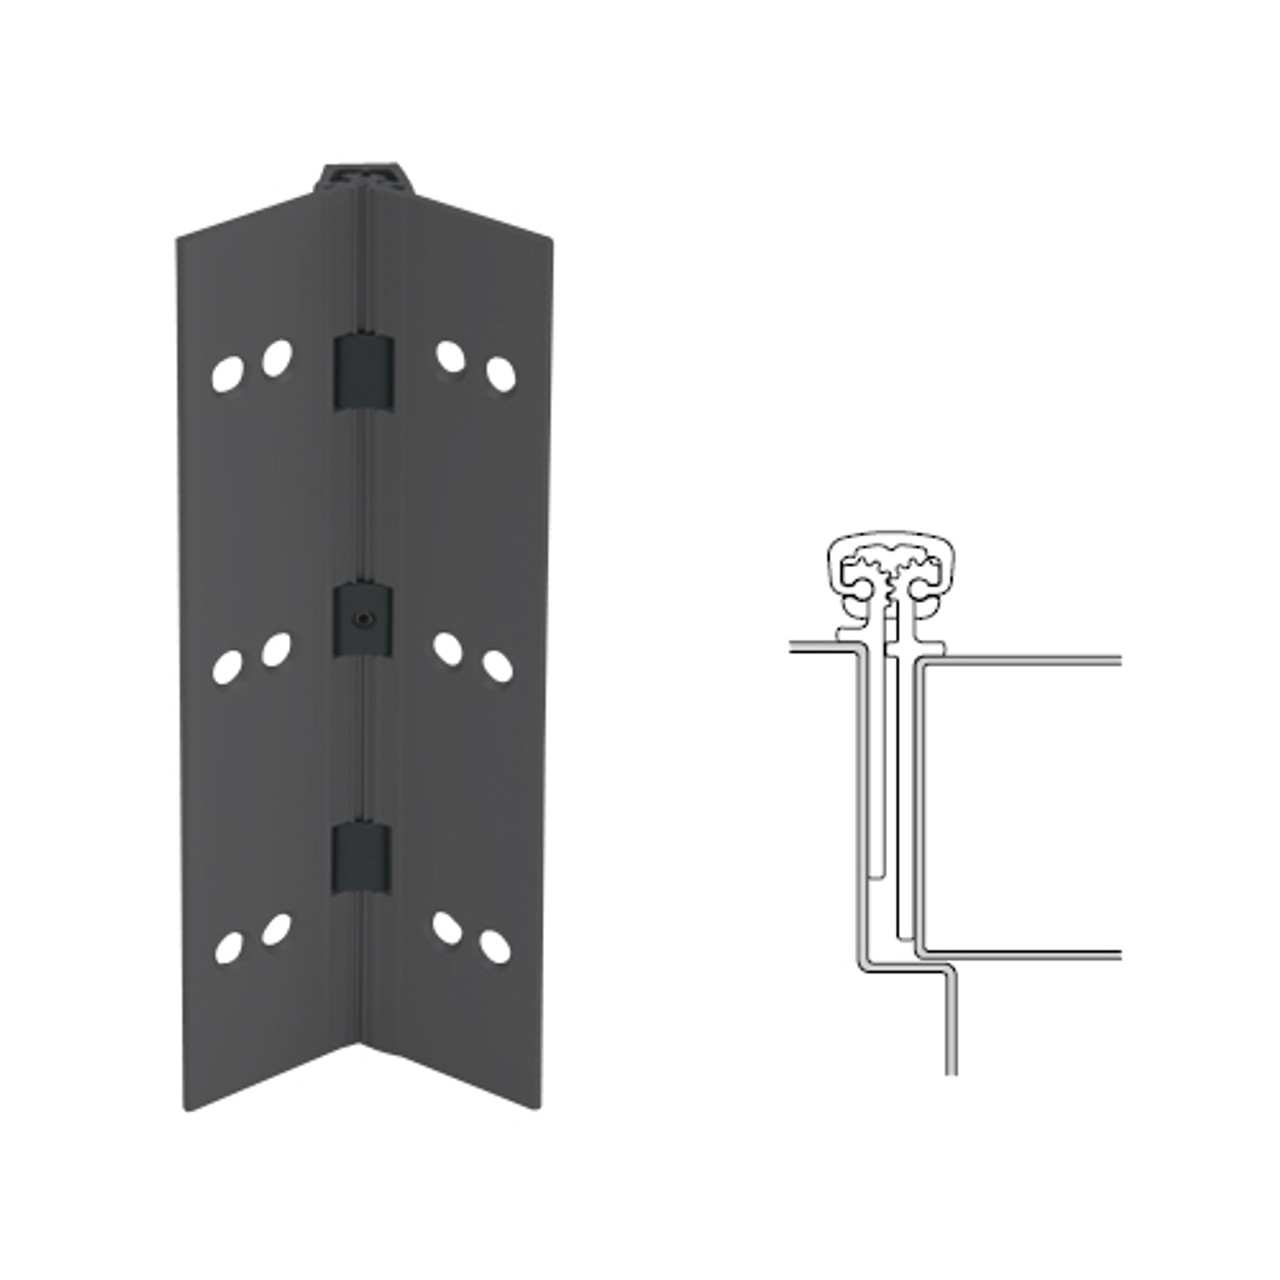 026XY-315AN-83-SECHM IVES Full Mortise Continuous Geared Hinges with Security Screws - Hex Pin Drive in Anodized Black